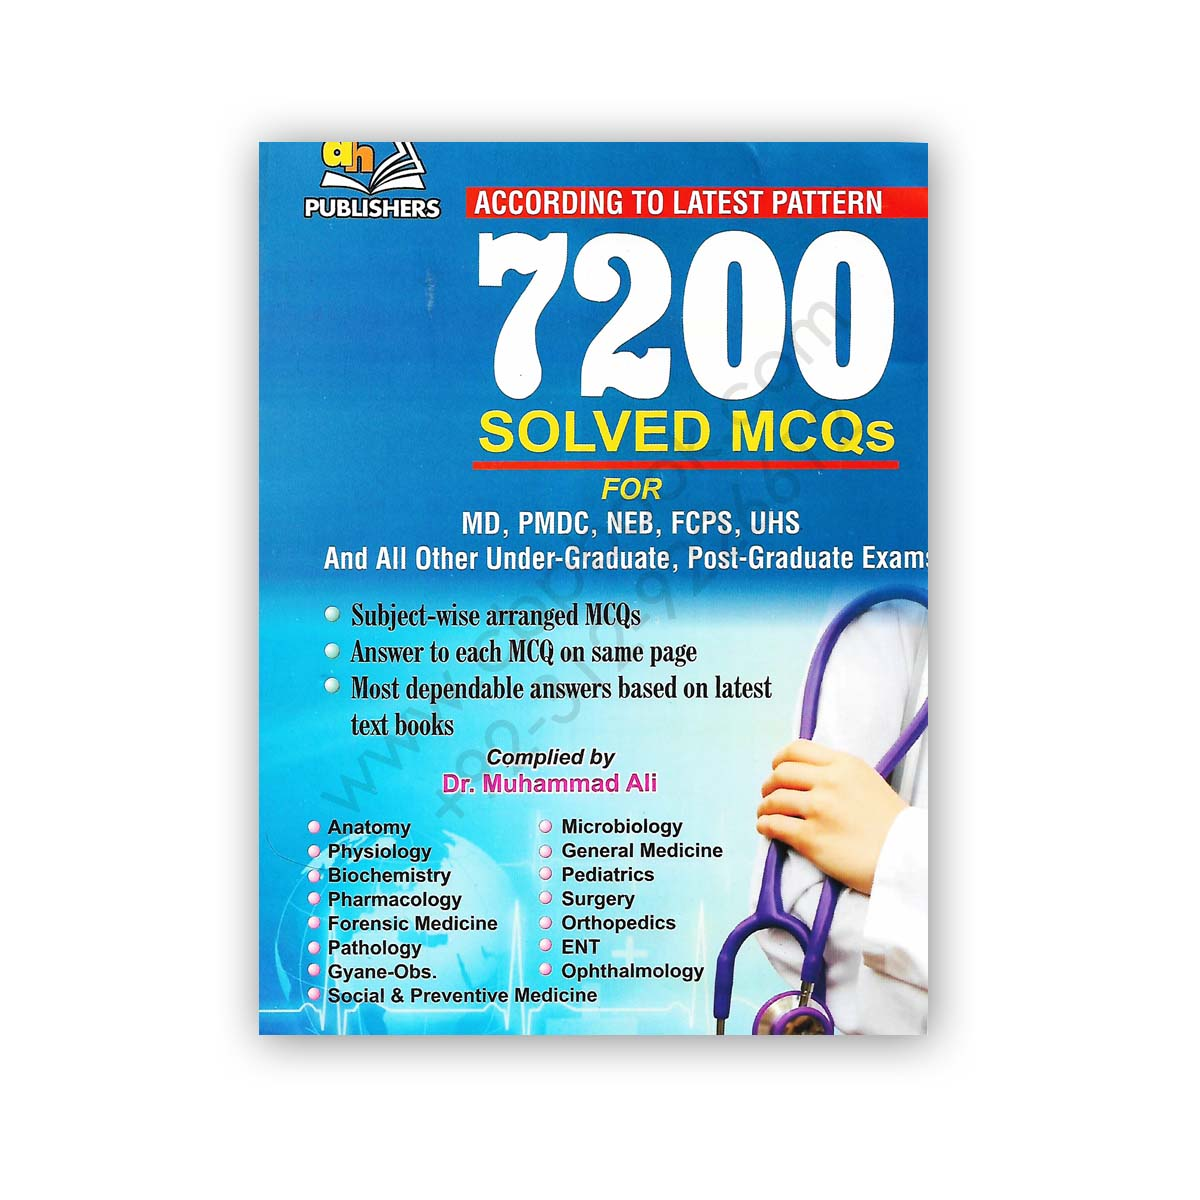 7200 Solved MCQs For MD/PMDC/NEB/FCPS/UHS By Dr M Ali - AH Publishers